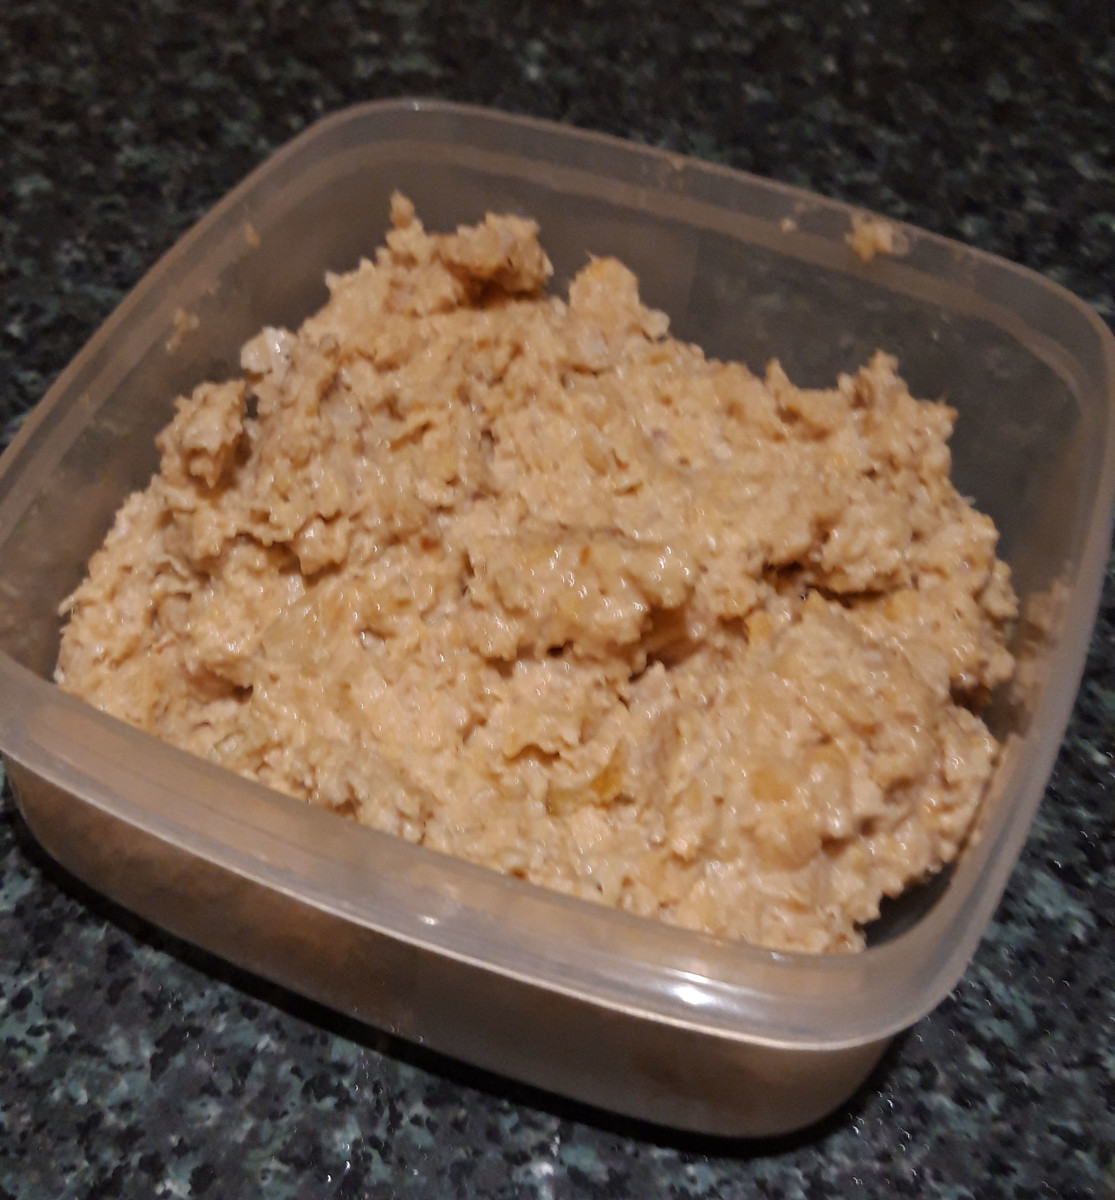 I like my hummus with a slightly lumpy texture. Just blend it a bit longer if you prefer a smoother mixture.